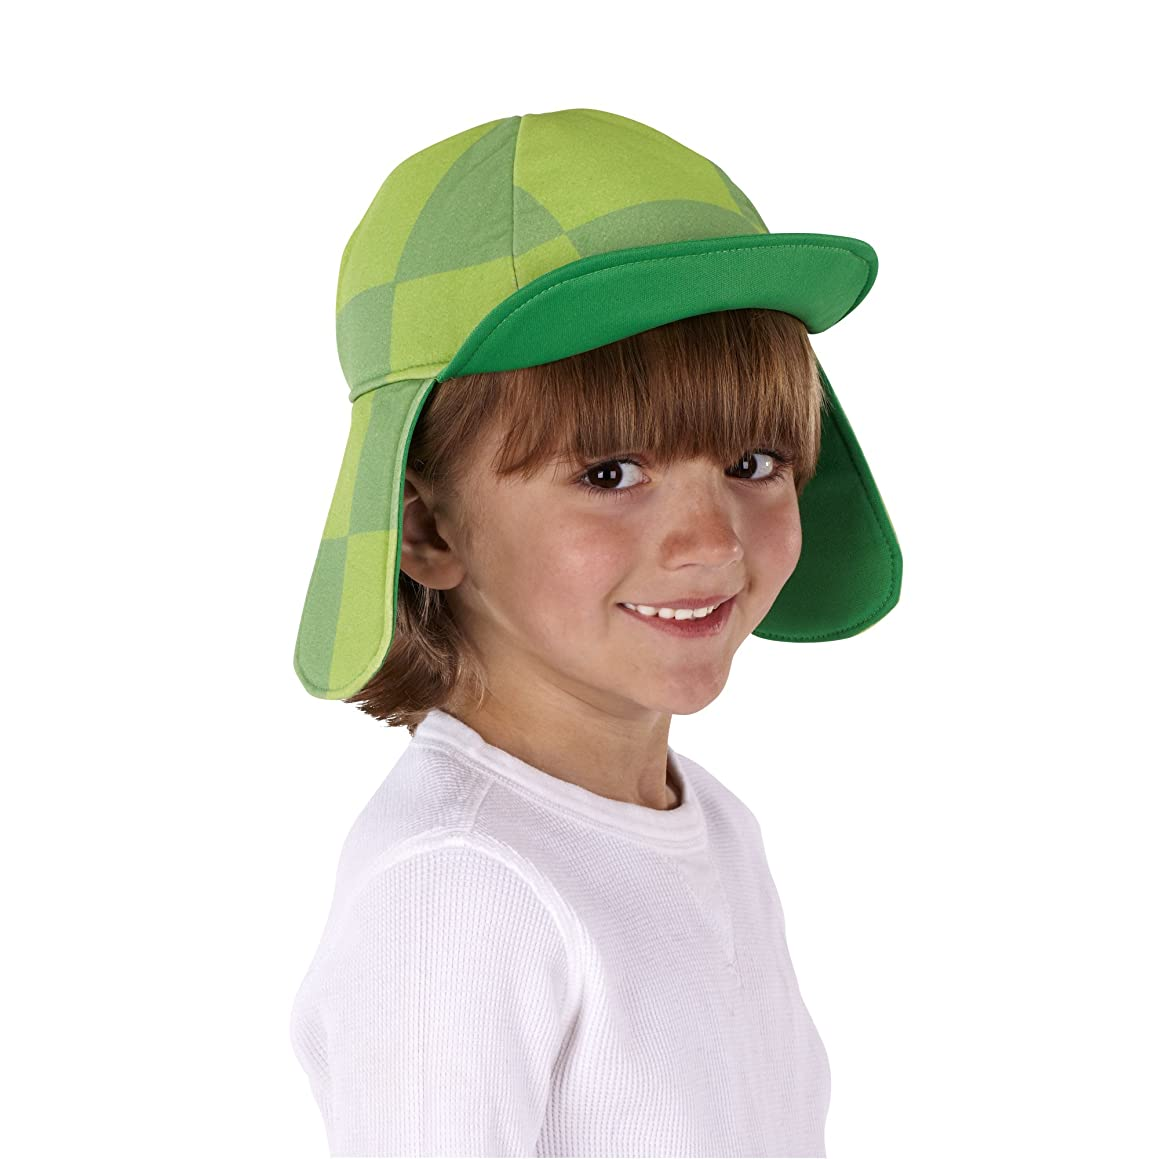 El Chavo Children's Hat Costume Animado Mexican TV Show Green Accessory